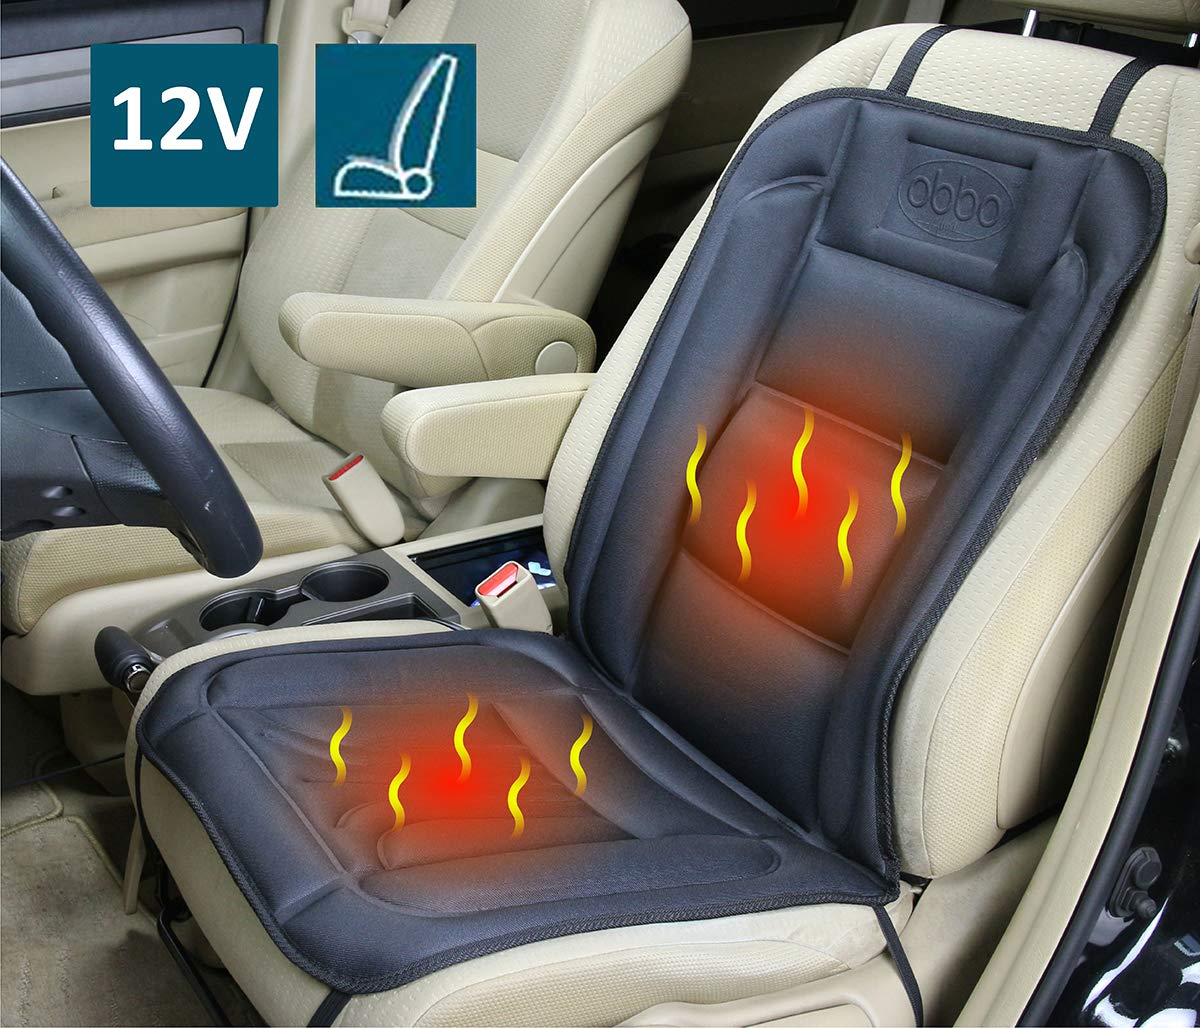 12V w// Lumbar Support Obbomed SA-4270 Cooling Ventilated AeroSeat Air Flow with Adjustable Lumbar Support Car Seat Fan Cushion